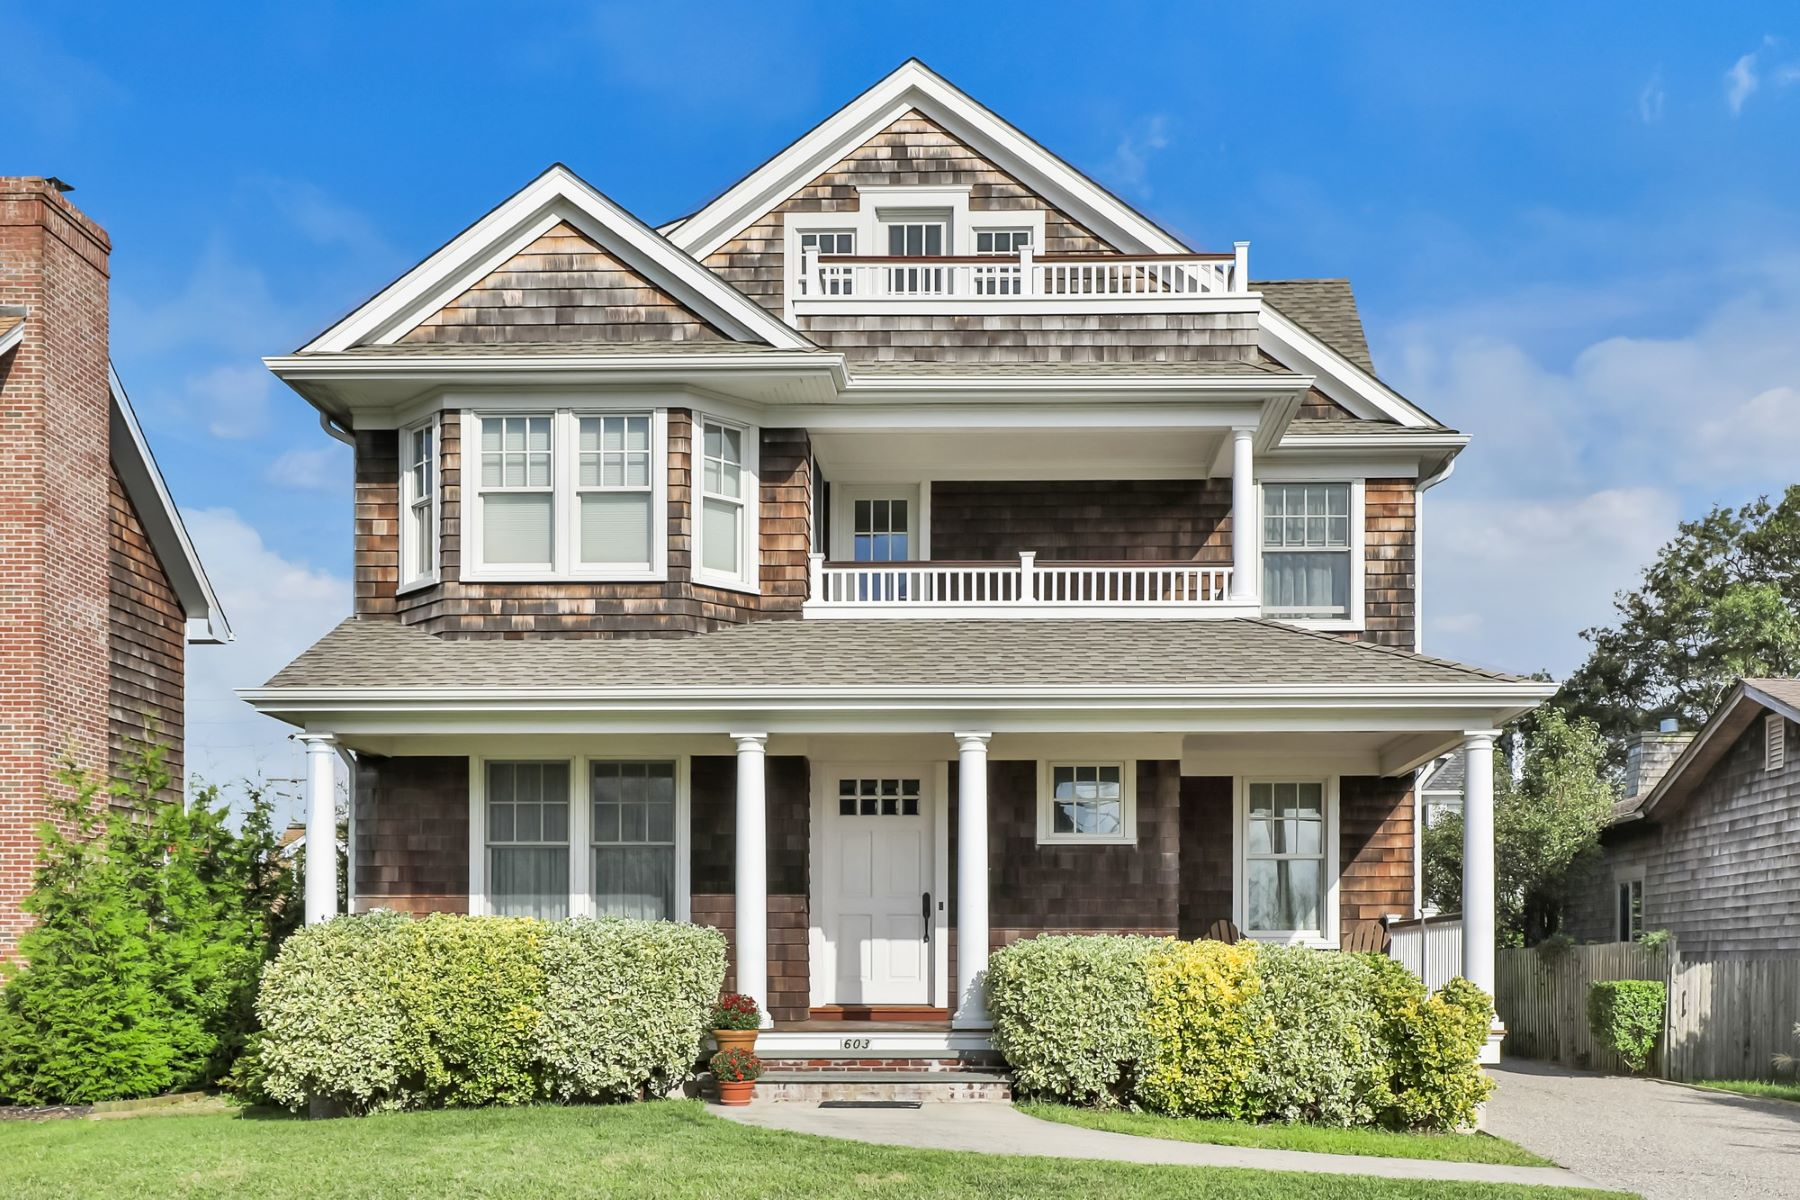 Single Family Homes for Active at Beautiful Custom Built Home Full Of Fine Craftsmanship 603 Lake Avenue Bay Head, New Jersey 08742 United States